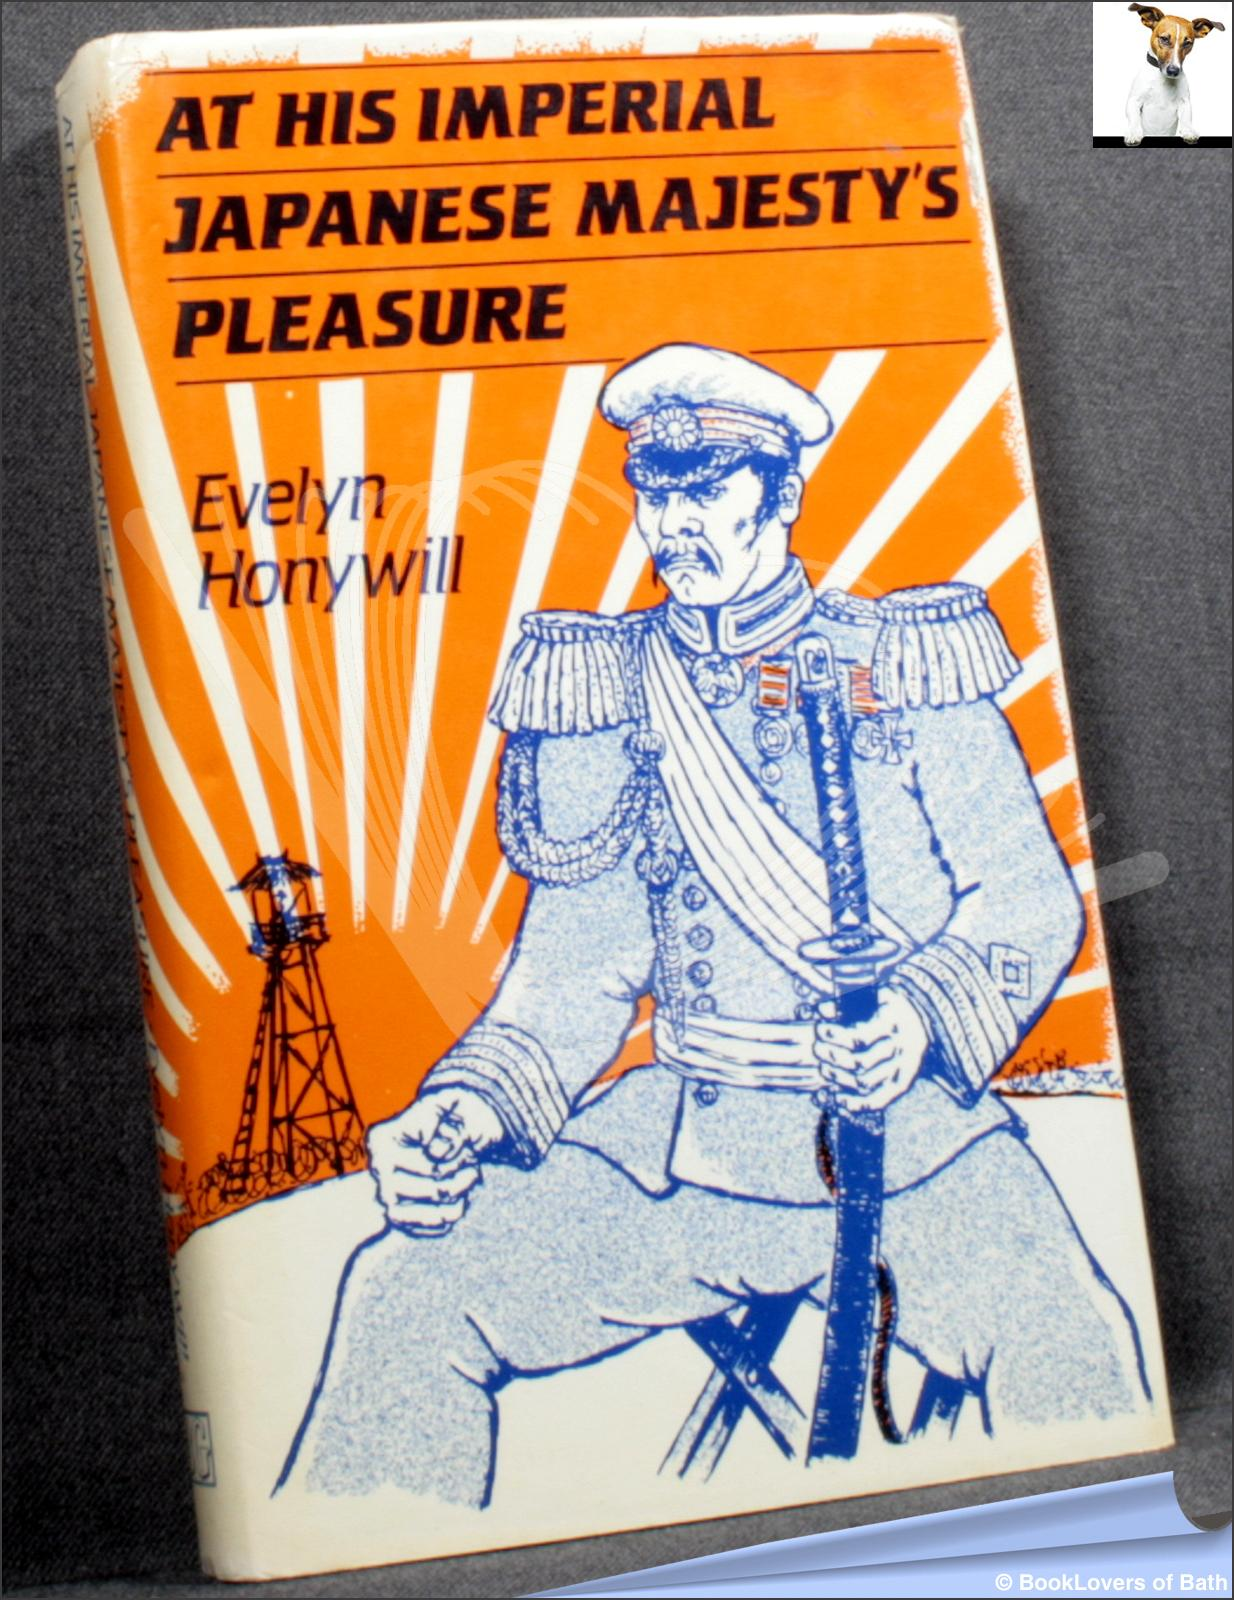 At His Imperial Japanese Majesty's Pleasure - Evelyn Honeywill